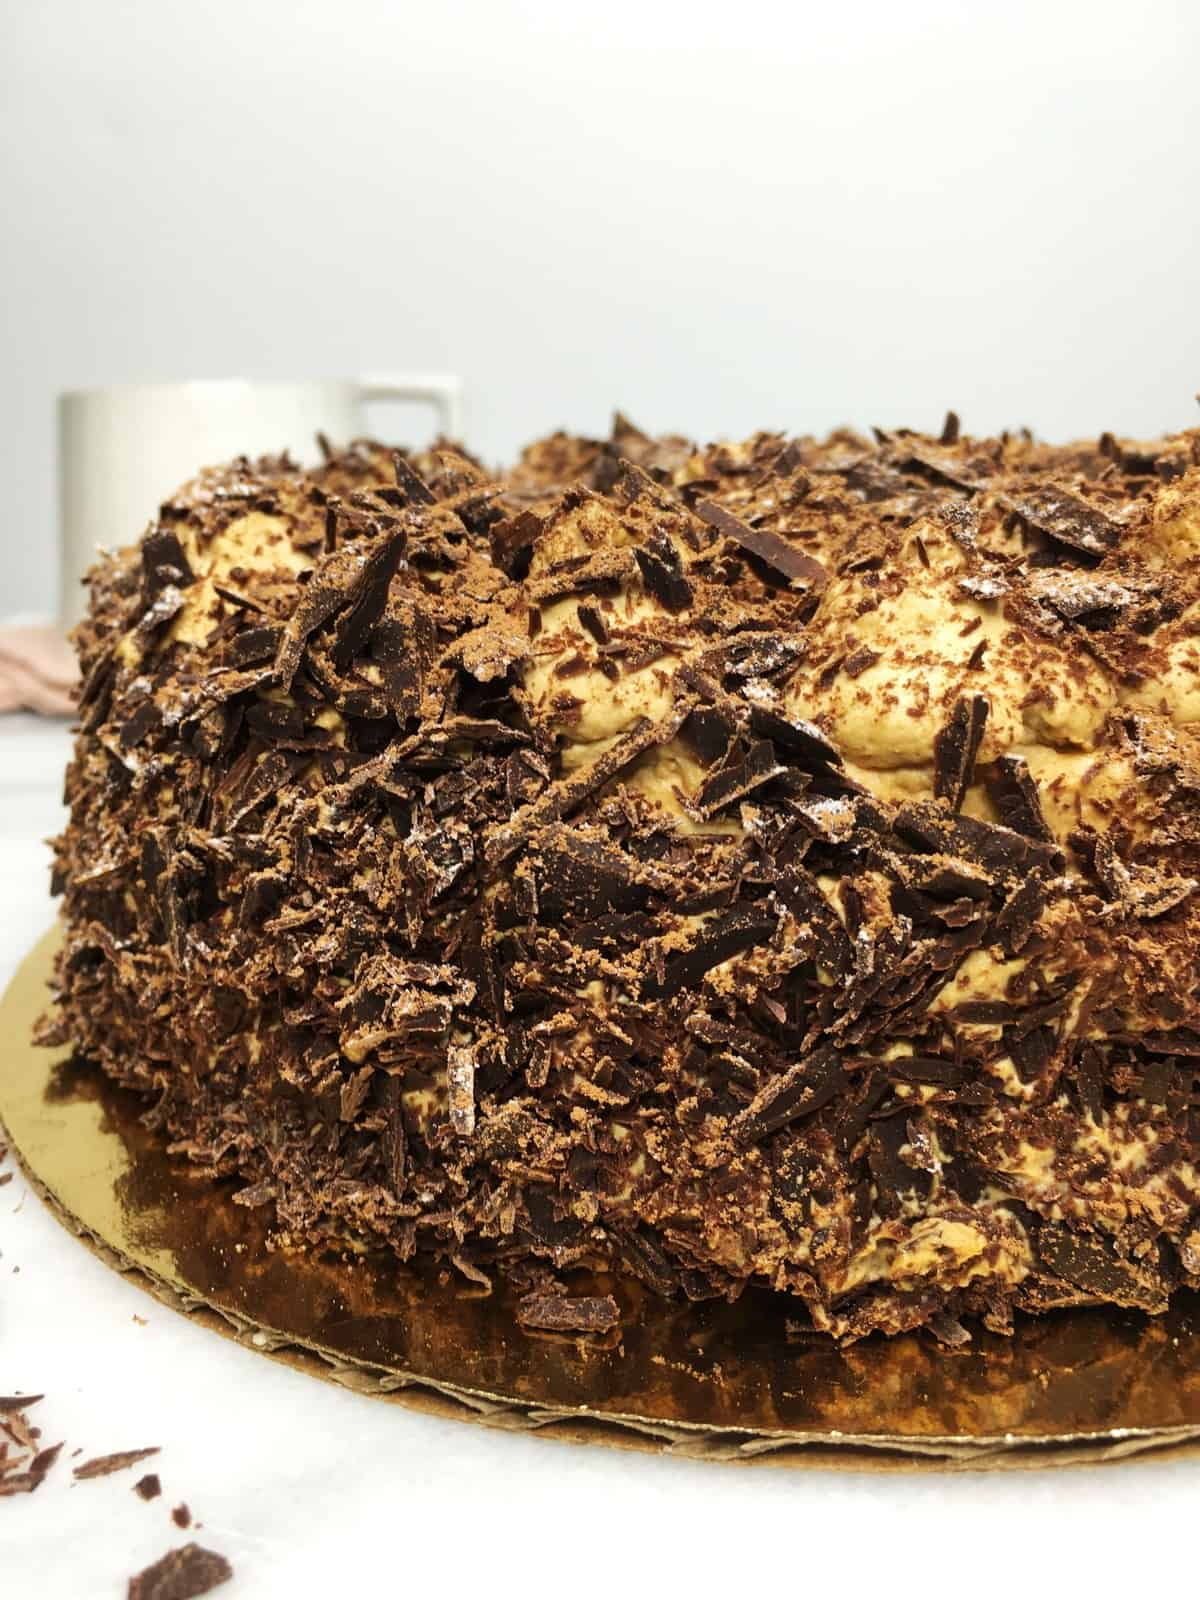 French Meringue Cake Merveilleux covered with chocolate shavings: Close up